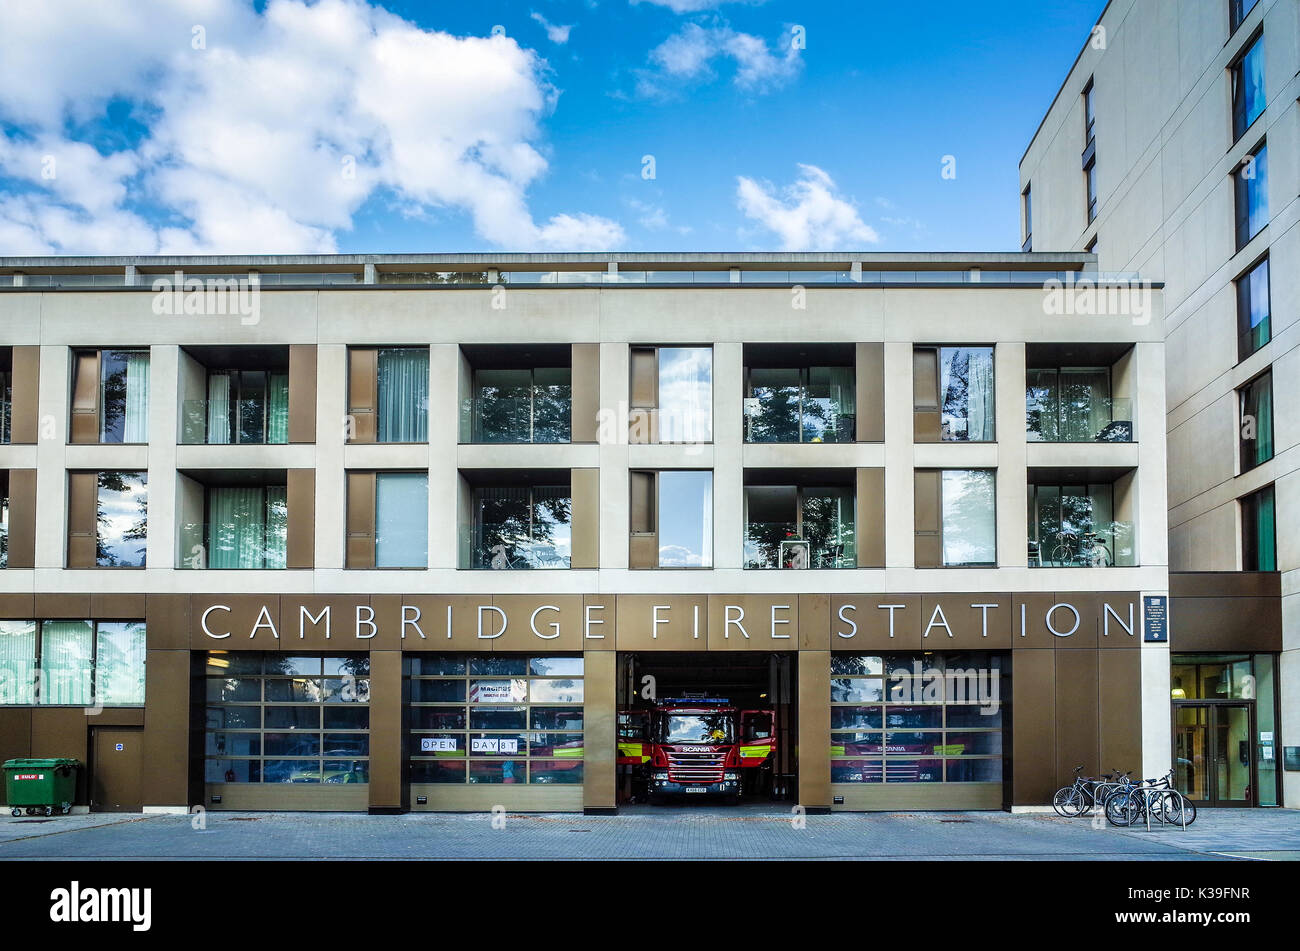 Cambridge Fire Station - Opened 2013 - redeveloped in partnership between the Fire Authority and urban developers Grosvenor. Architects Glenn Howells - Stock Image